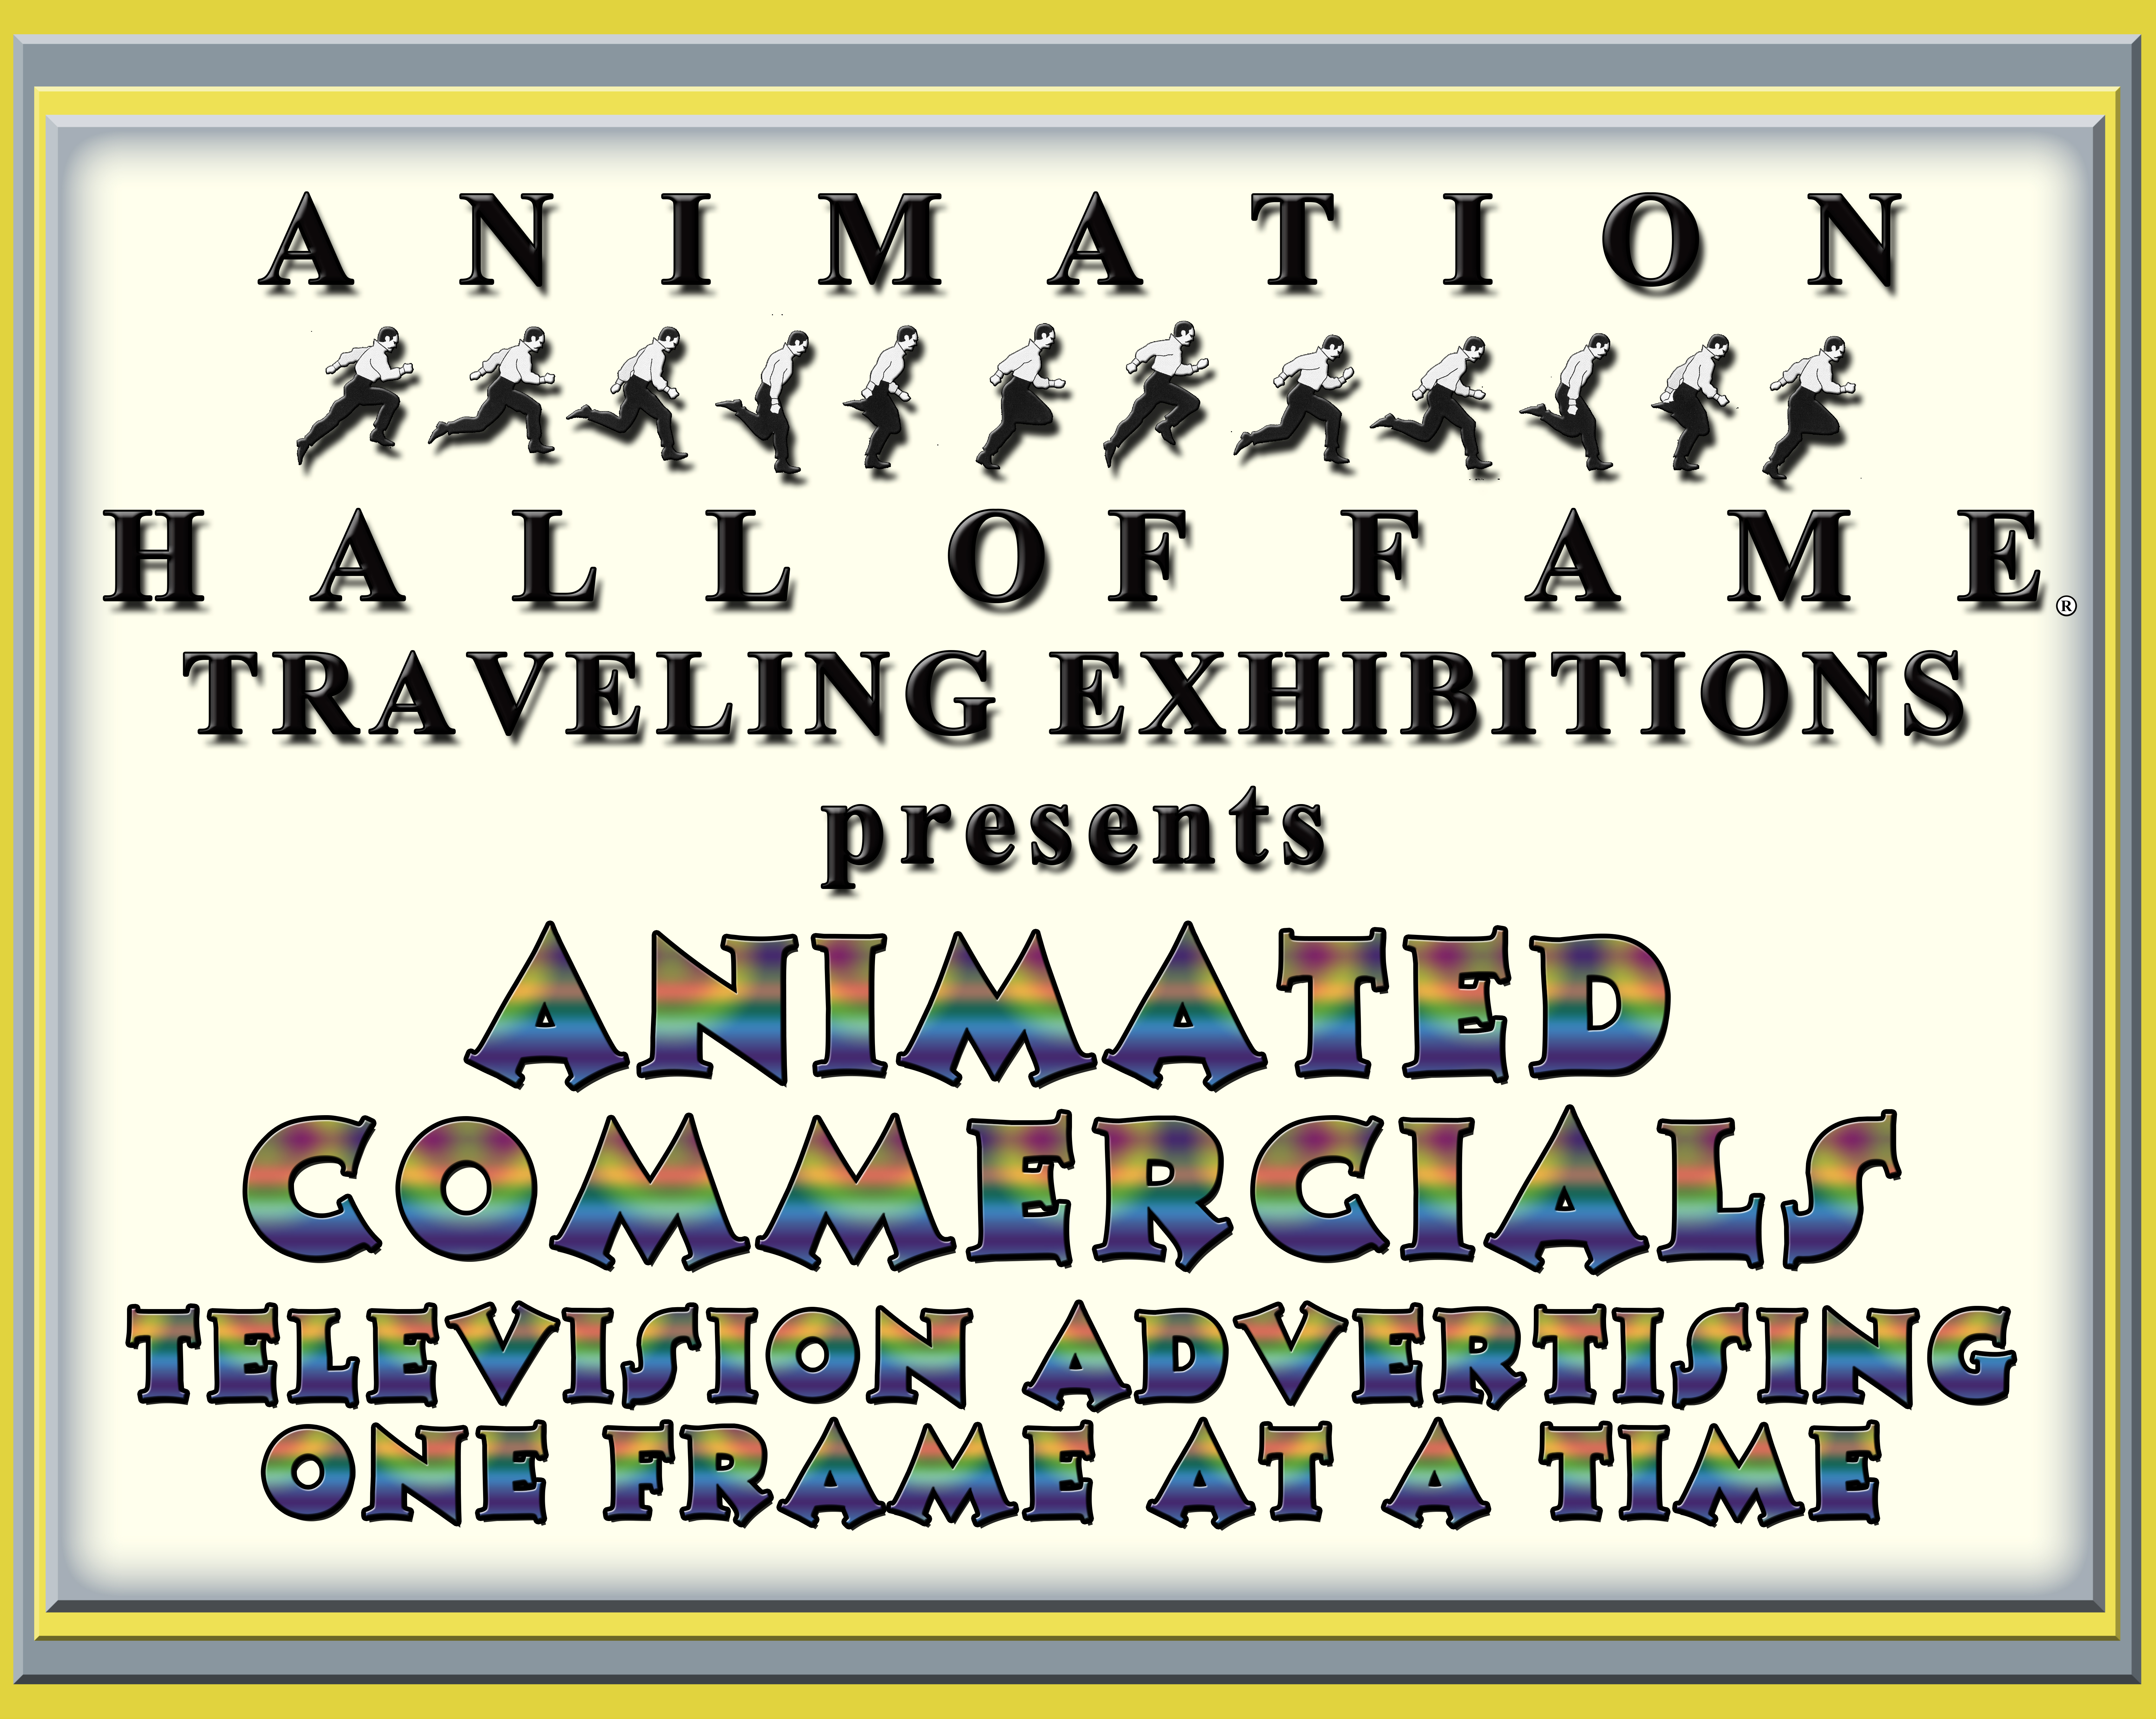 Animation Hall of Fame Traveling Exhibitions Presents Animated Commercials Television Advertising One Frame at a Time